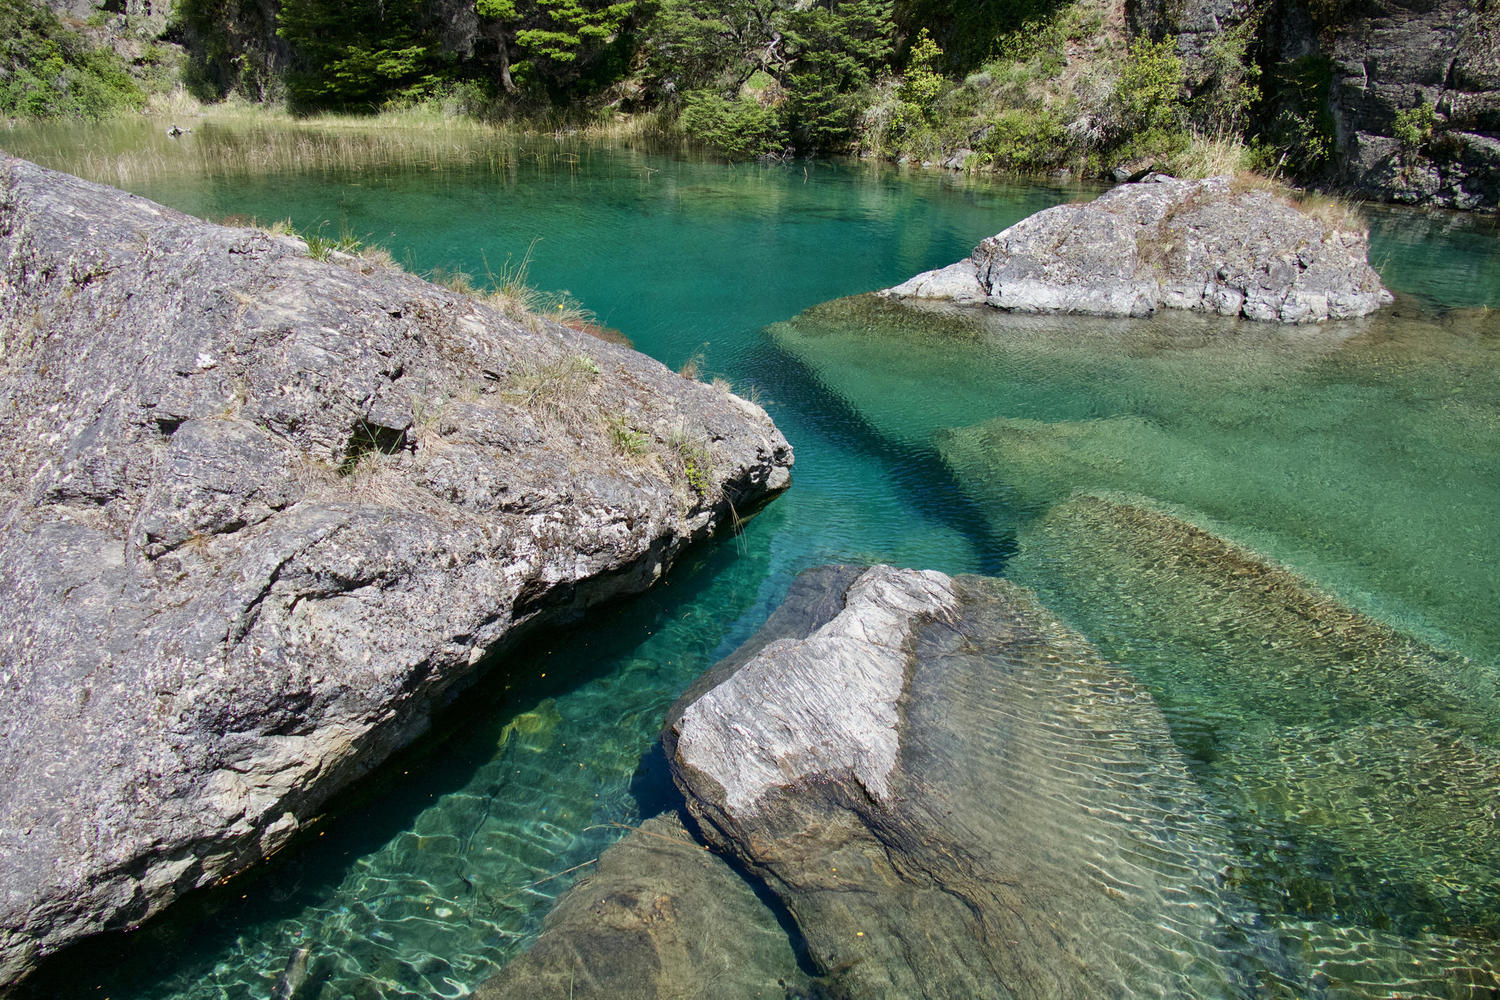 Beautifully clear waters of the Cochrane River inside the Tamango Reserve, Carretera Austral